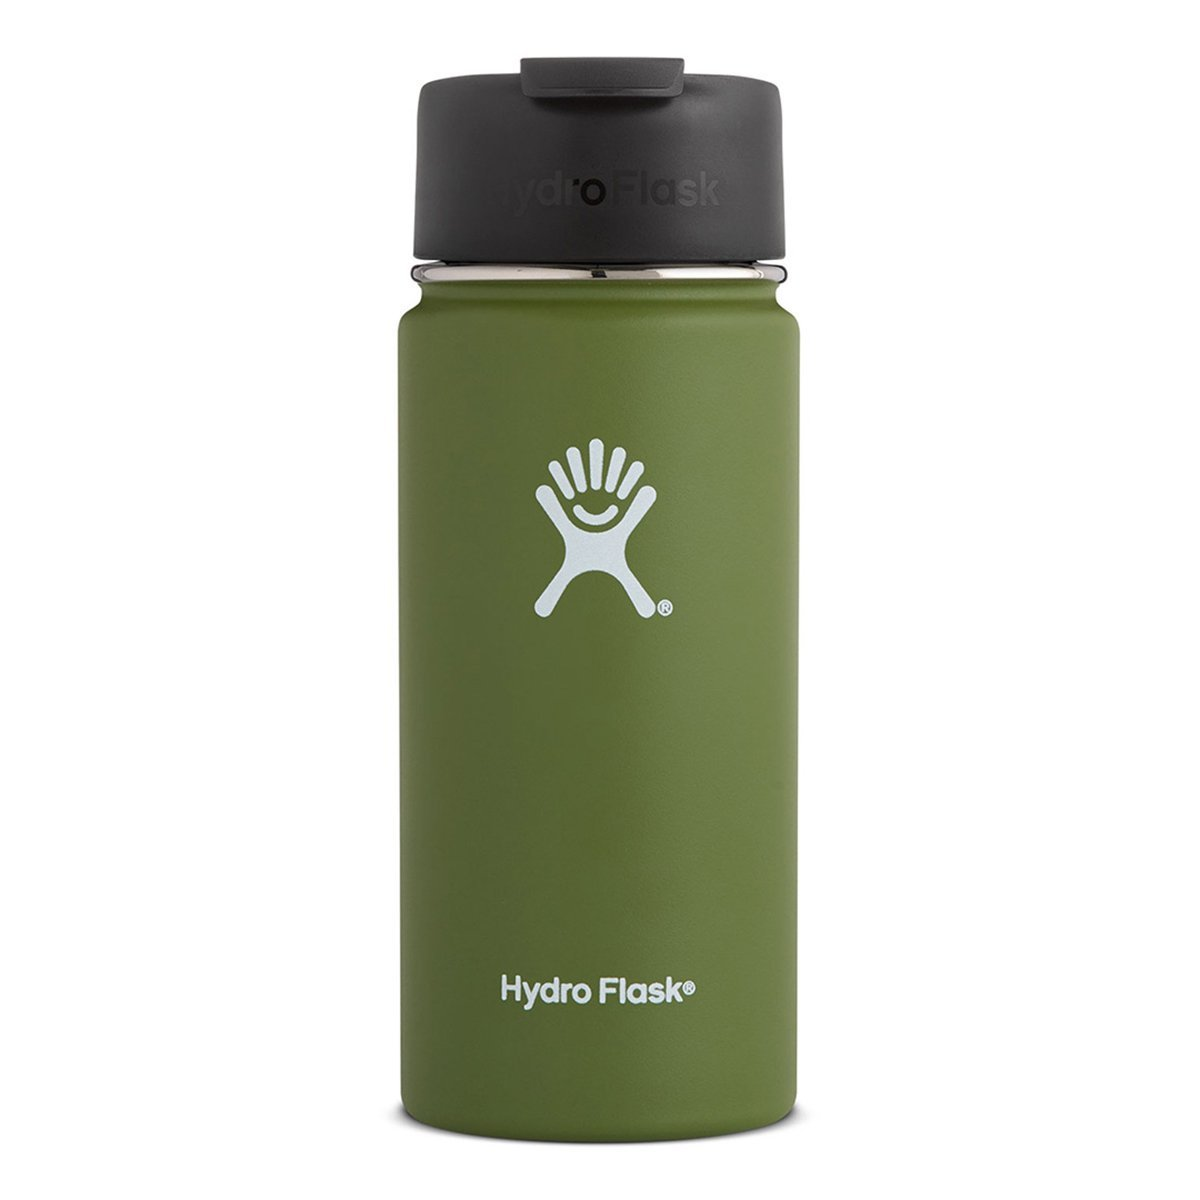 Hydro Flask - Coffee Flask 16 oz - Tea Flask, Vacuum Flask - Olive